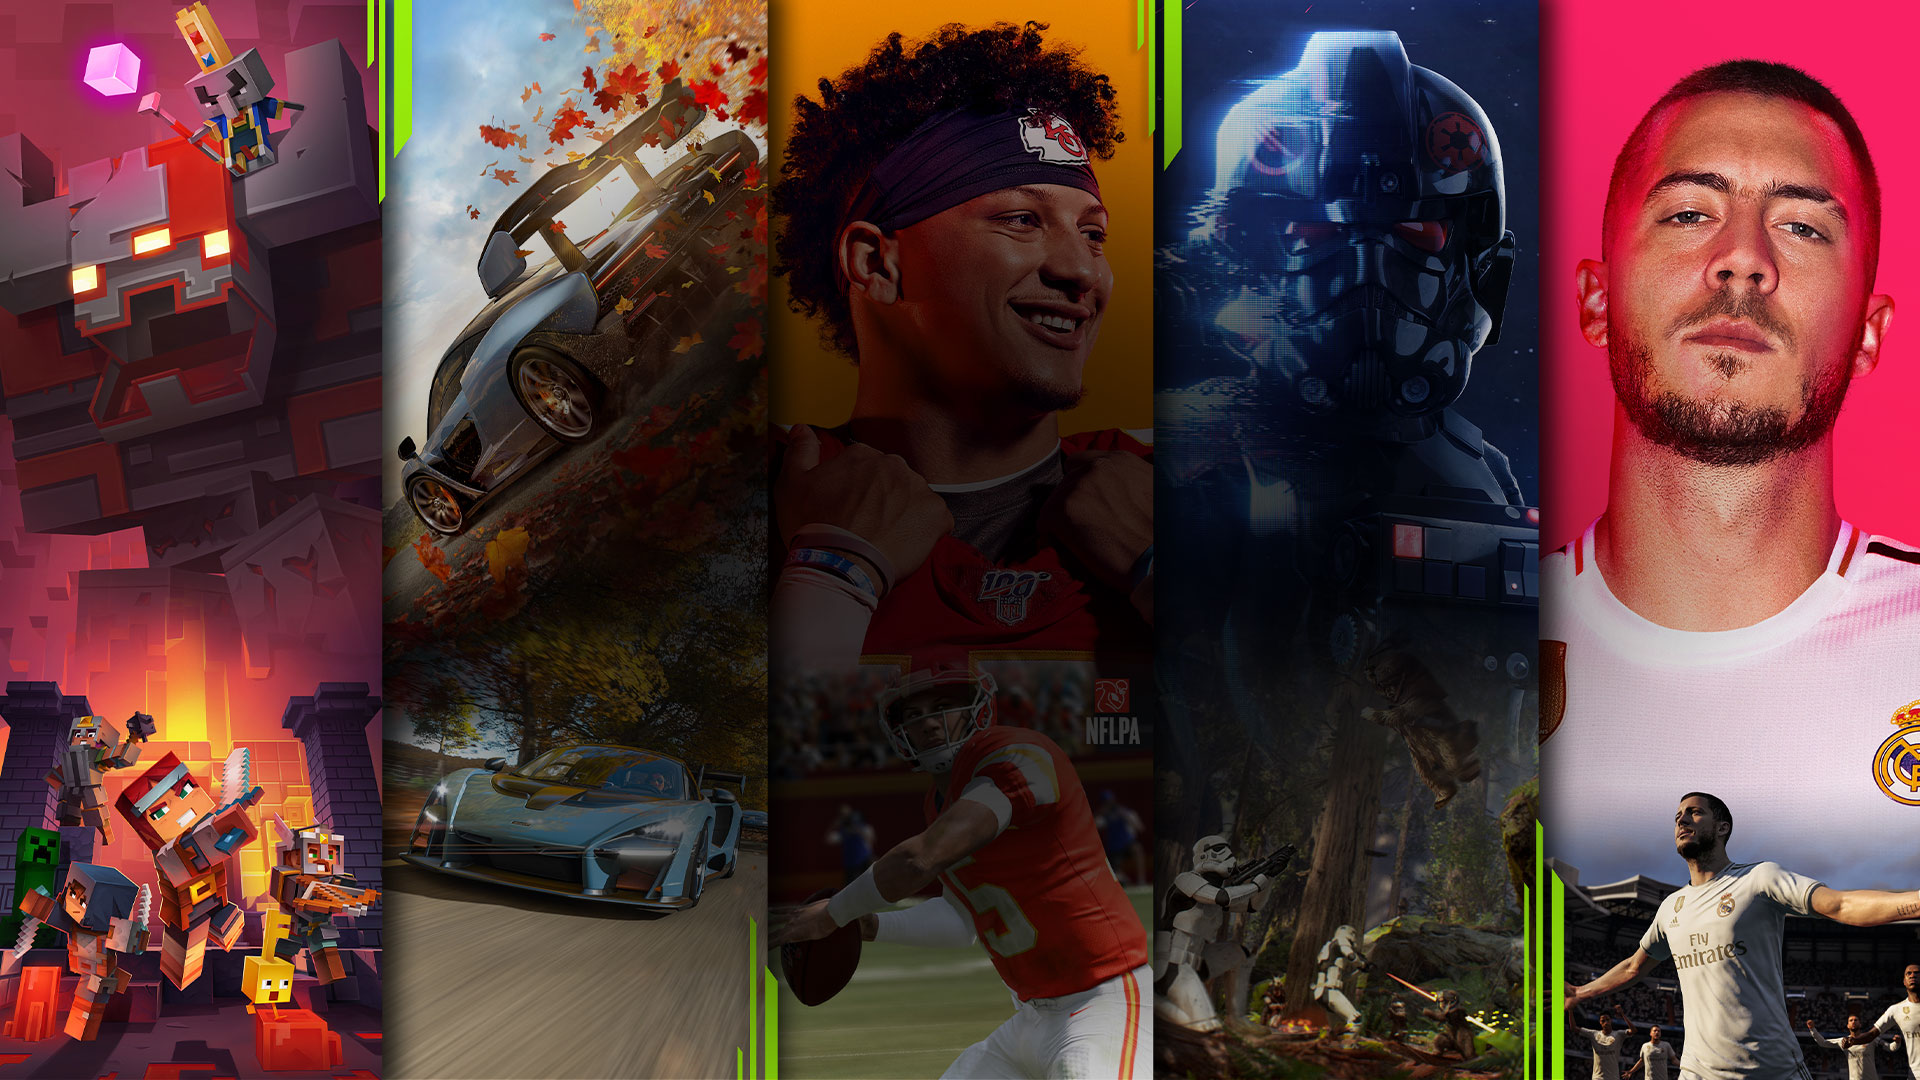 Xbox Game Pass, mosaico di personaggi di EA Play e Xbox Game Pass